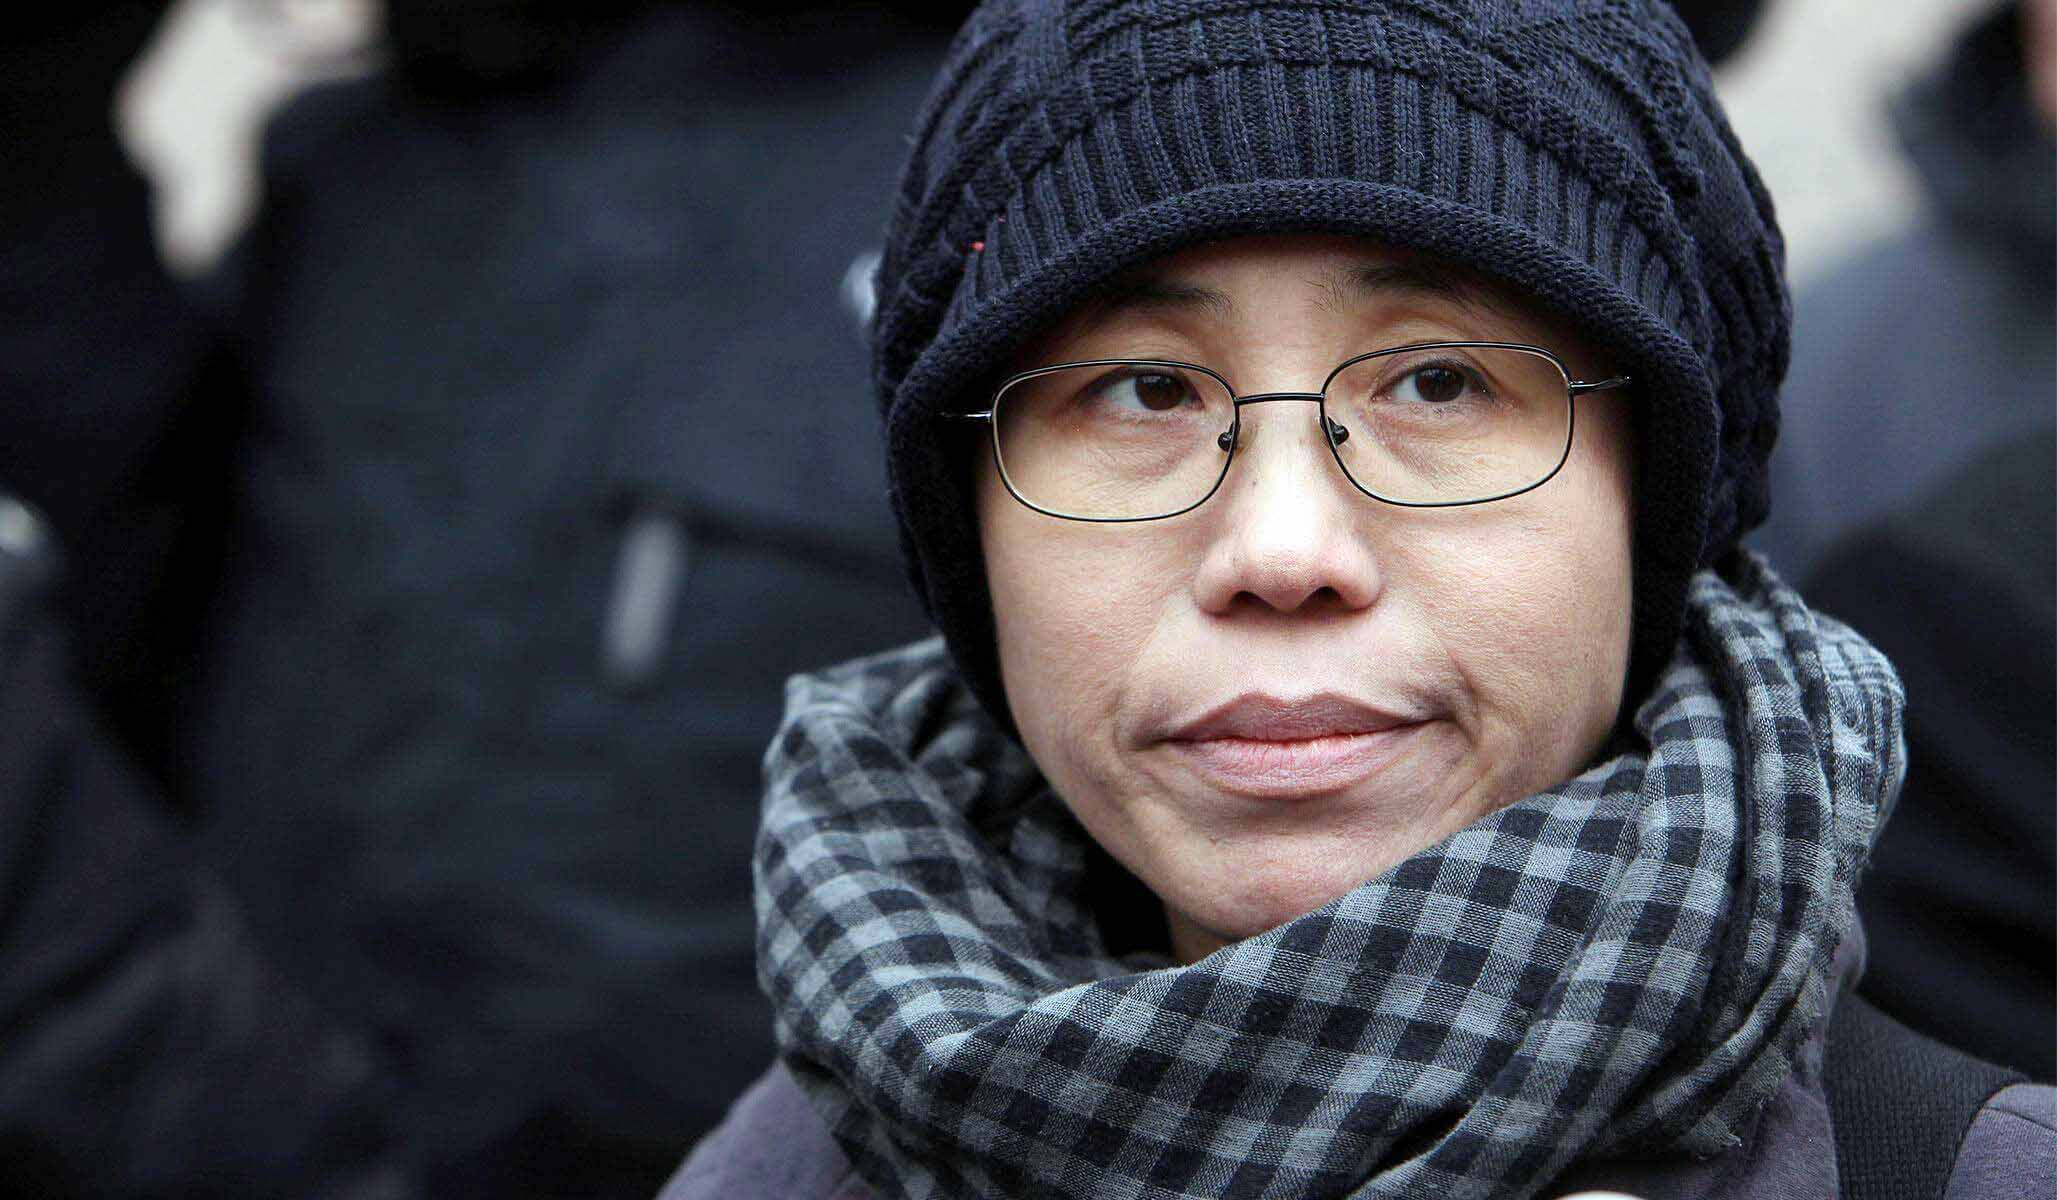 American writers, artists urge President Xi to free Liu Xia ahead of Trump visit